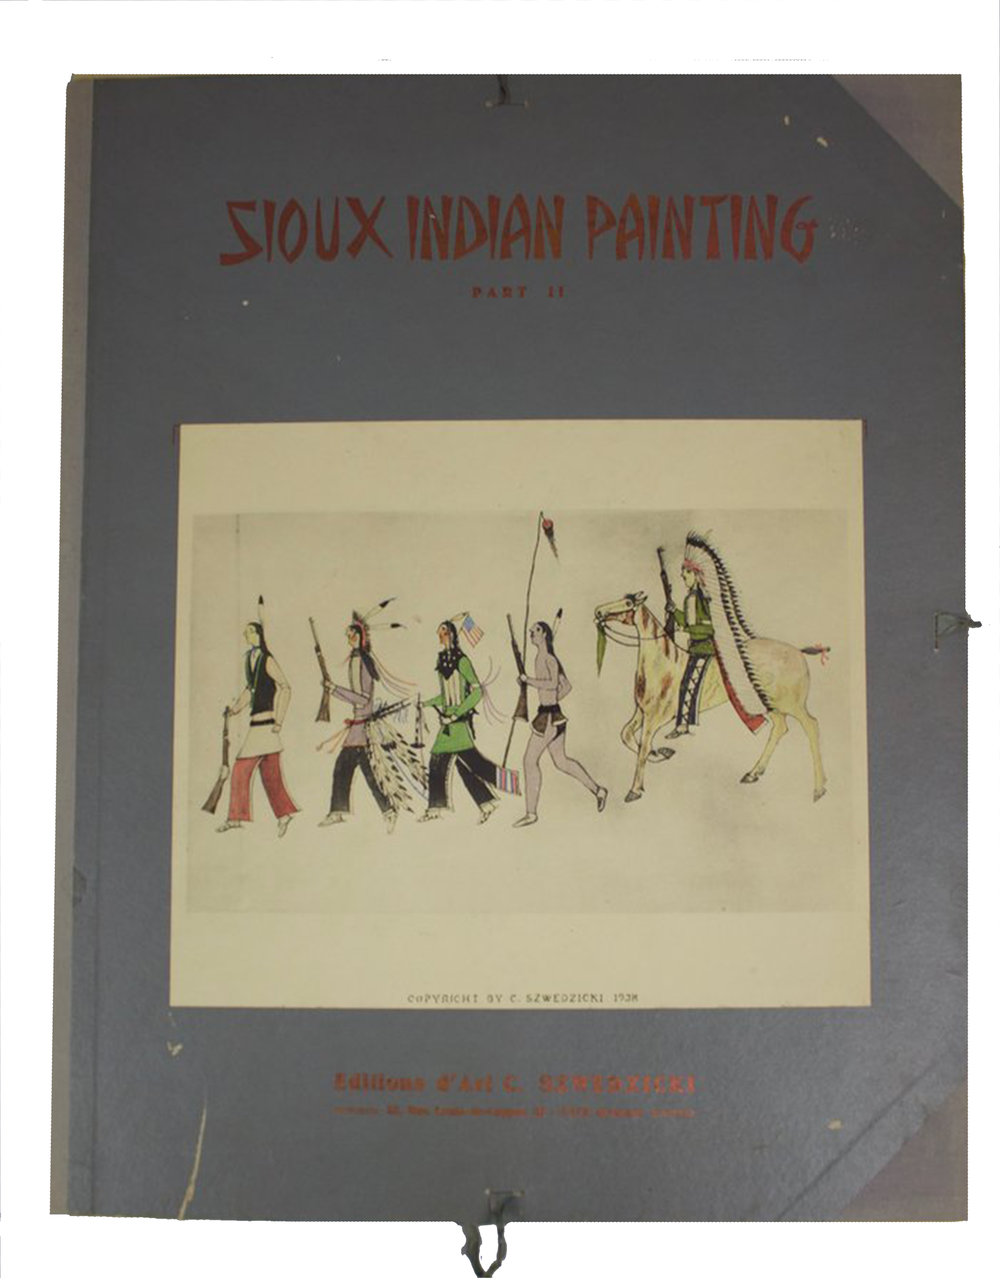 Sioux Indian Painting     Amos Bad Heart Bull   Printed in 1938 in Nice, France, 25 Images  Intro and Notes by H.B. Alexander, Publisher C. Szwedsicki  DV0075 // BV0770